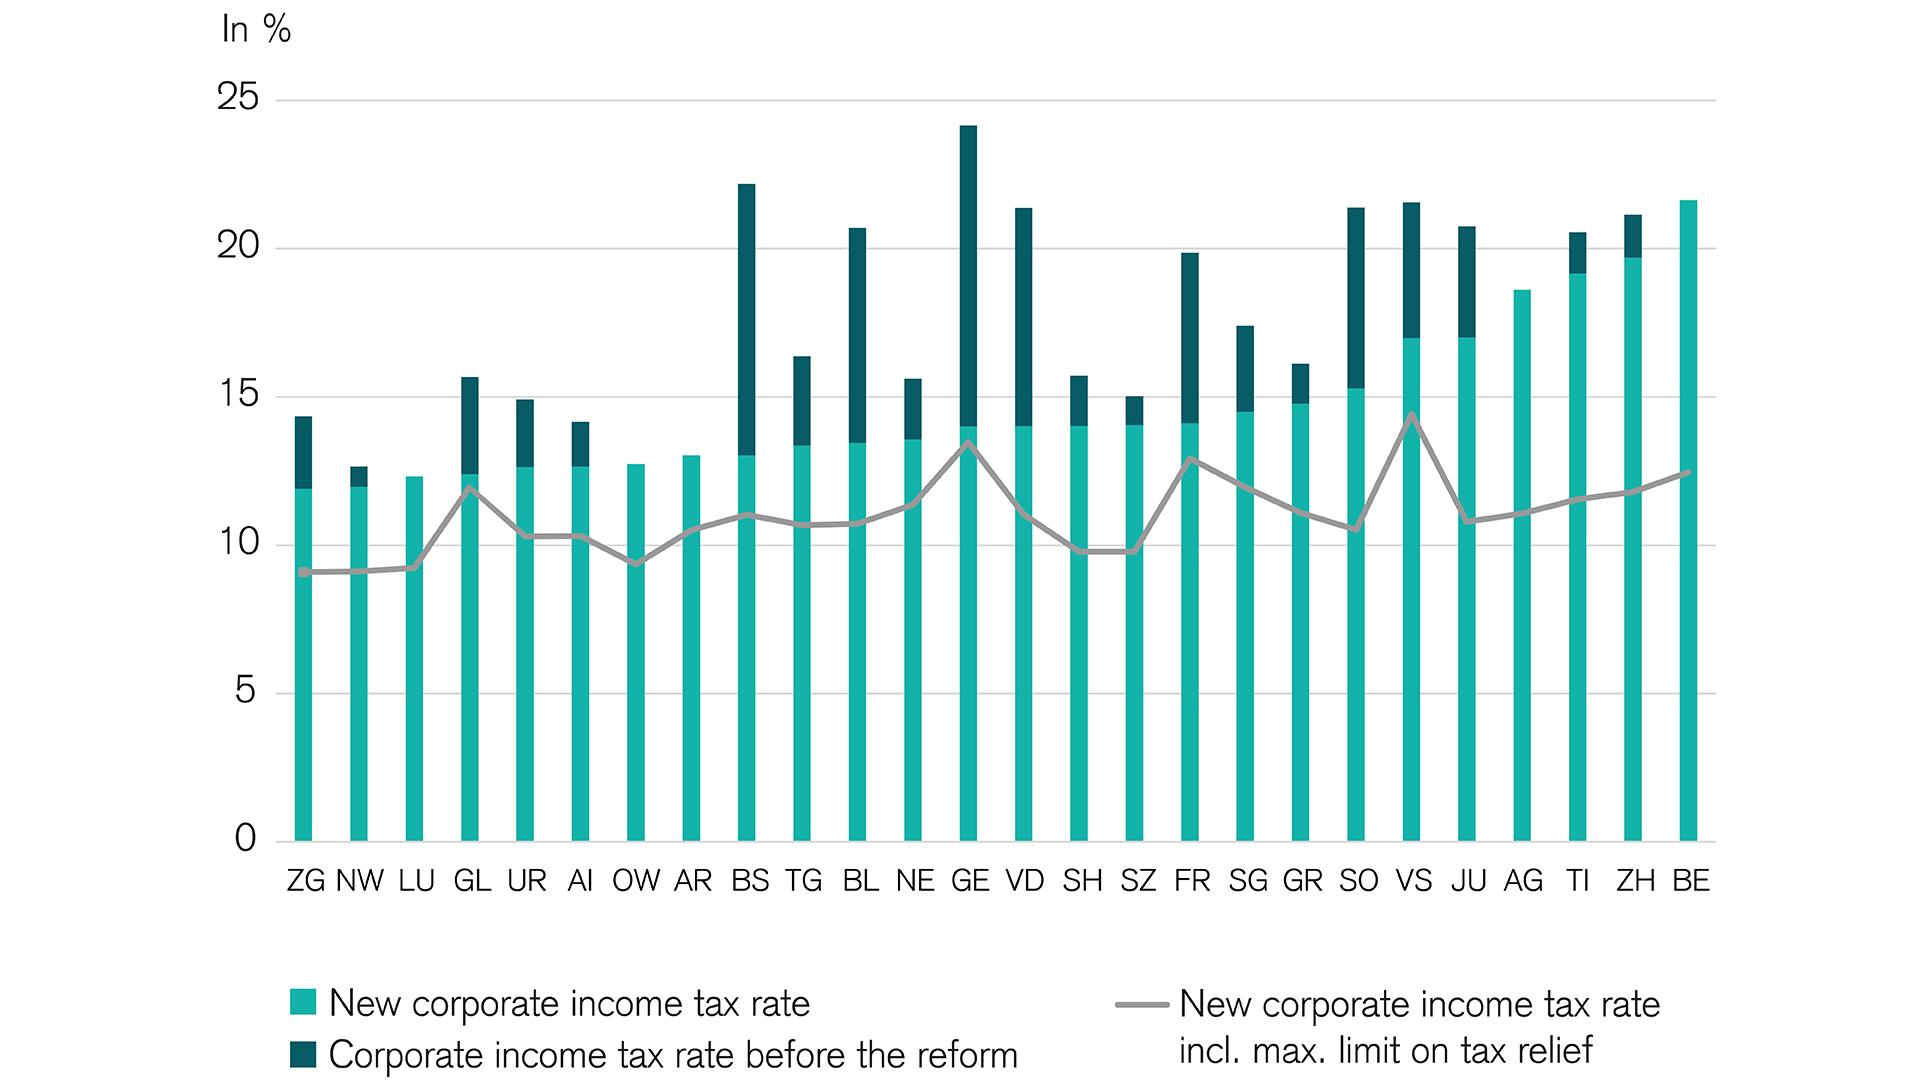 Following the corporate tax reform, many cantons reduced the corporate income tax